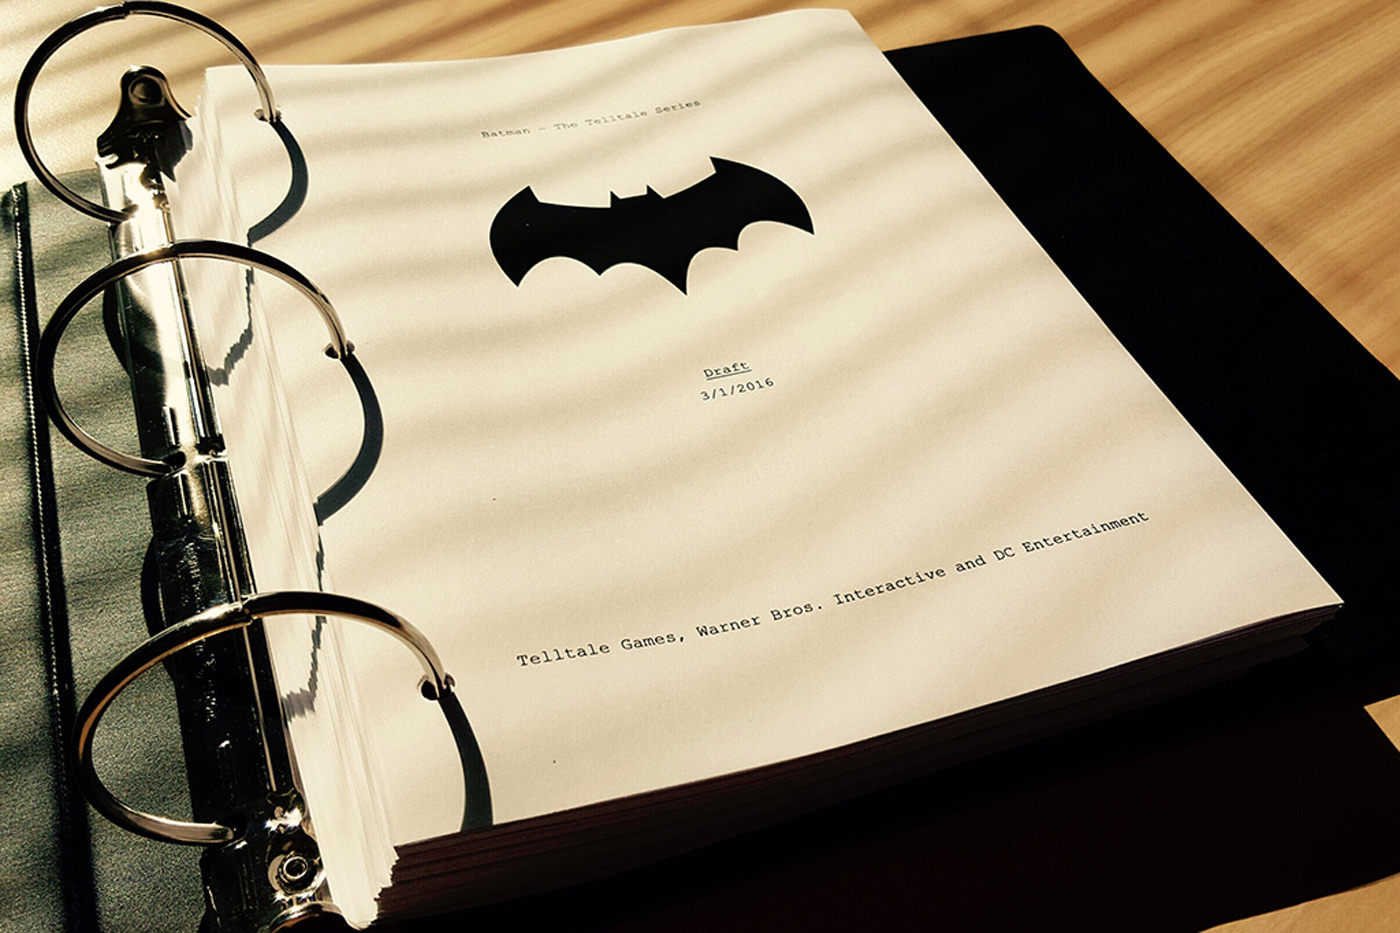 Telltale reveals the first details of its 'Batman' game series